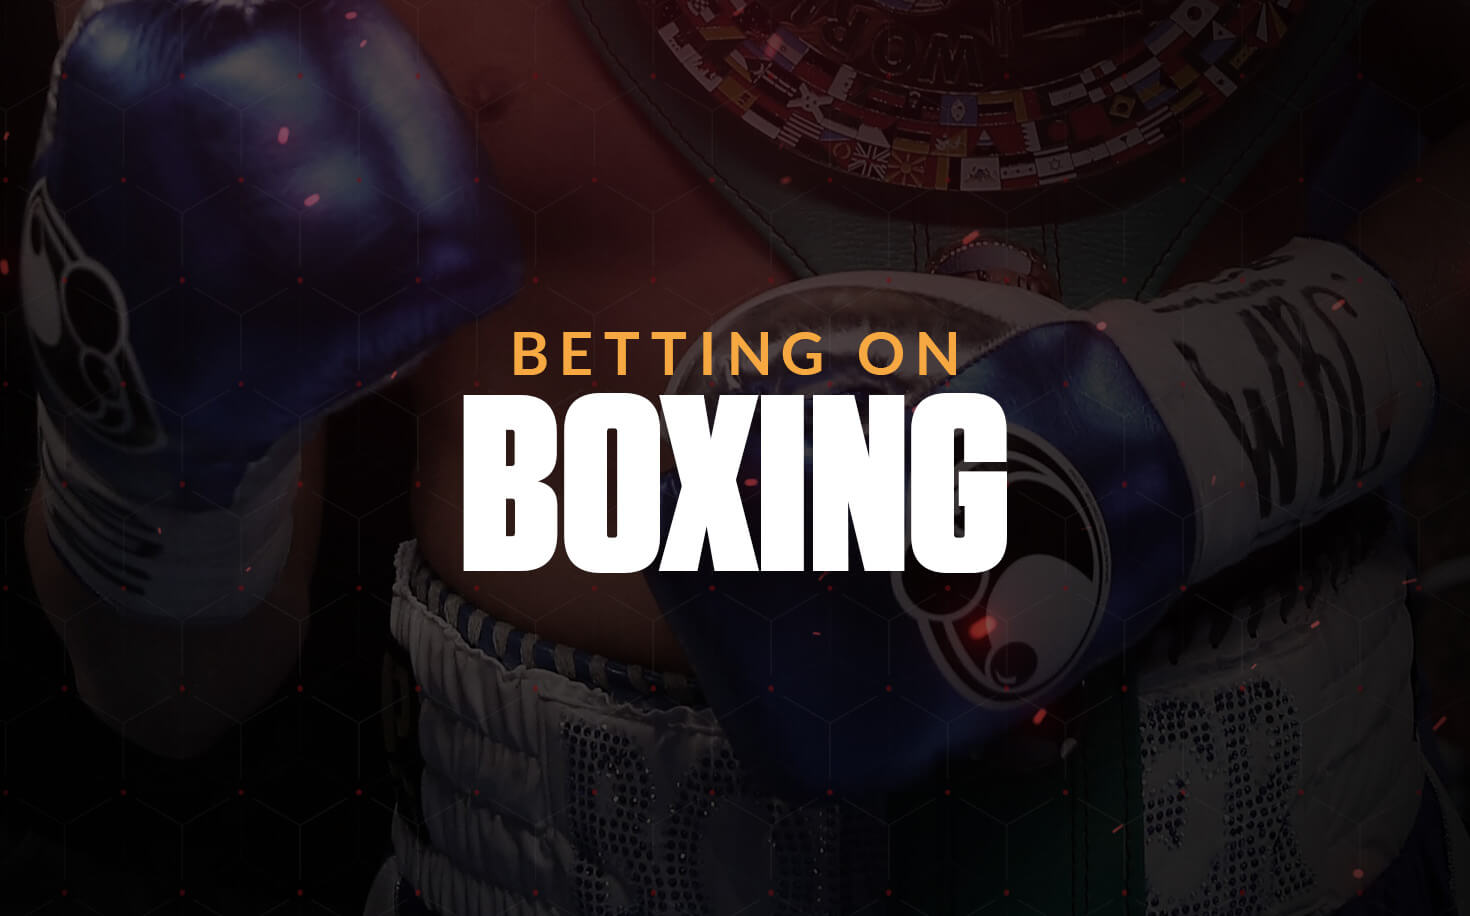 How Boxing betting works?